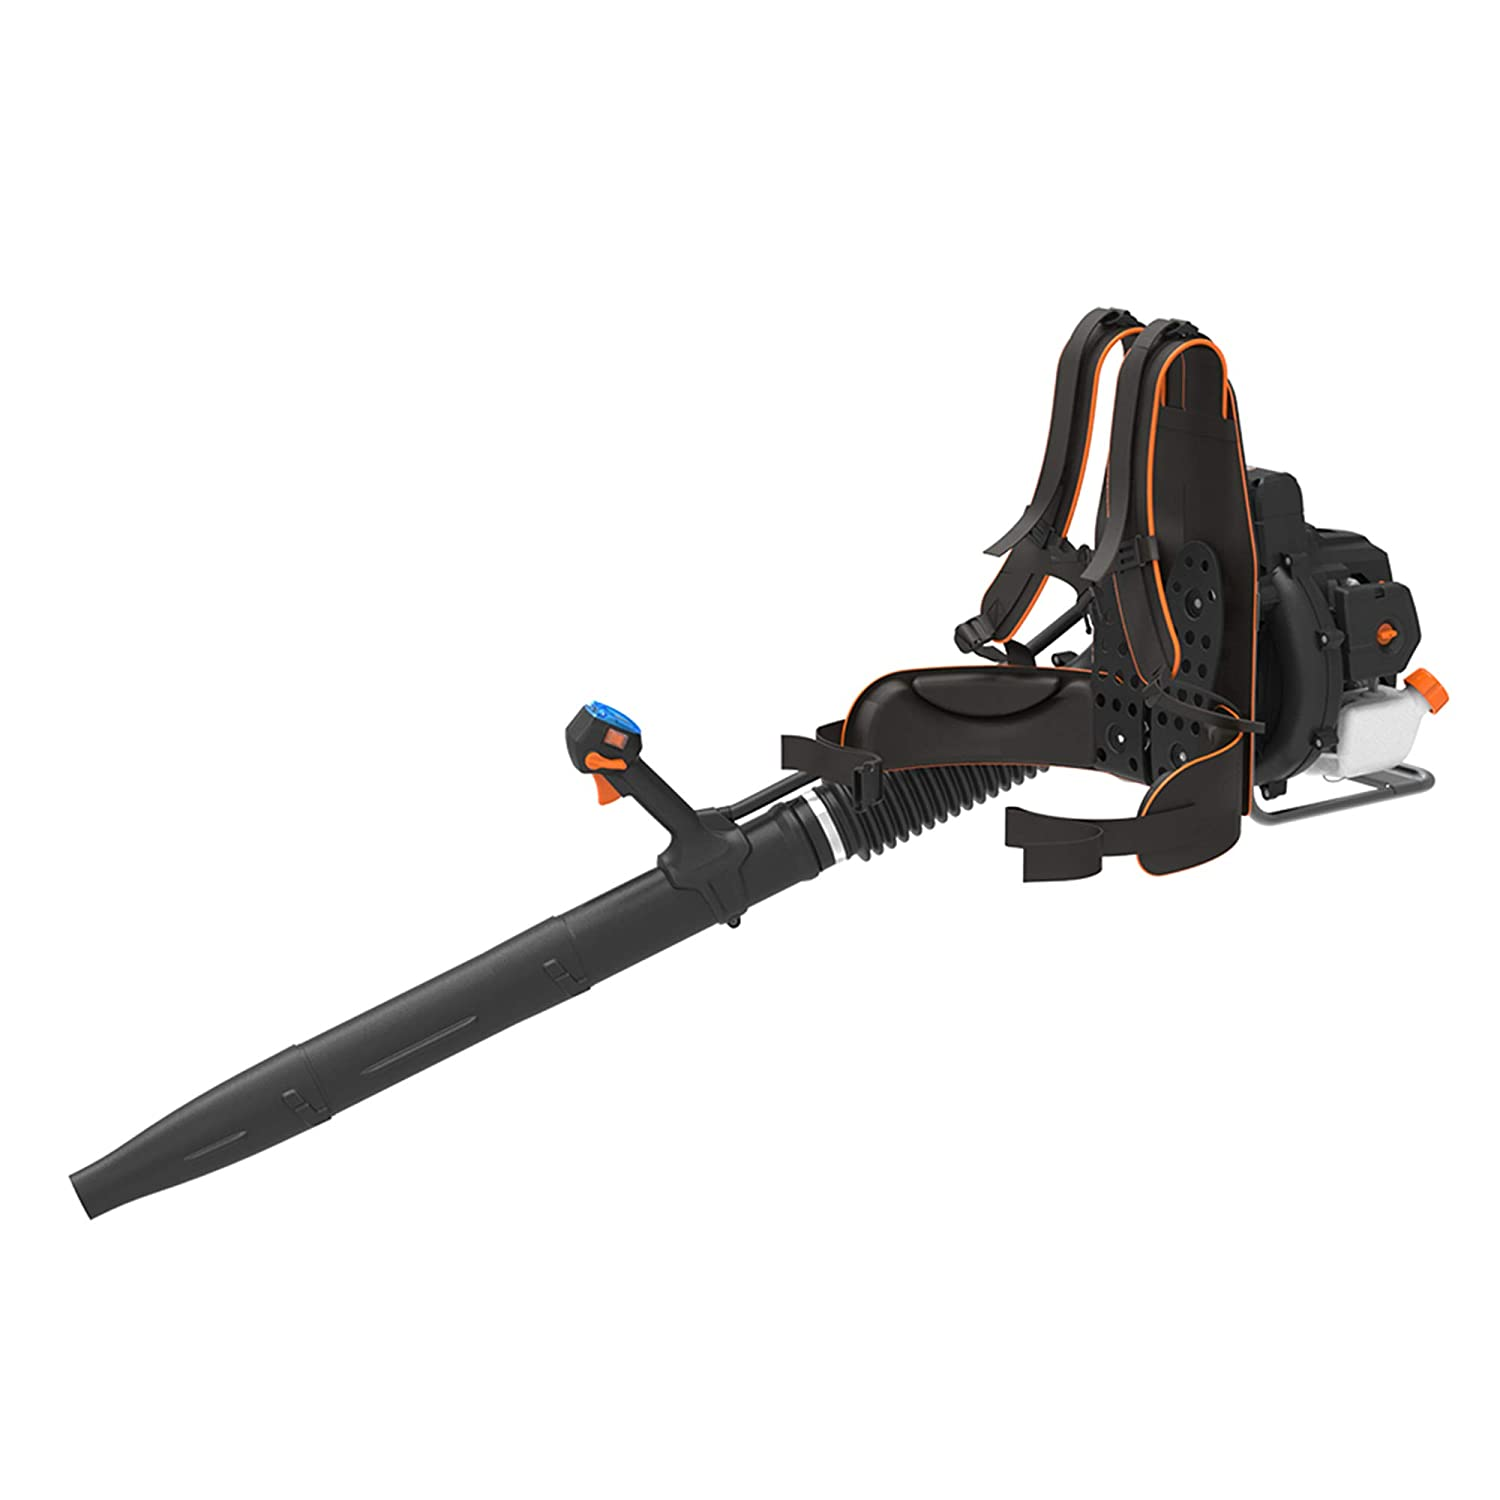 LawnMaster, NPTBL31AB, 2 Cycle 31cc No Pull Back Pack Blower, Orange, Black